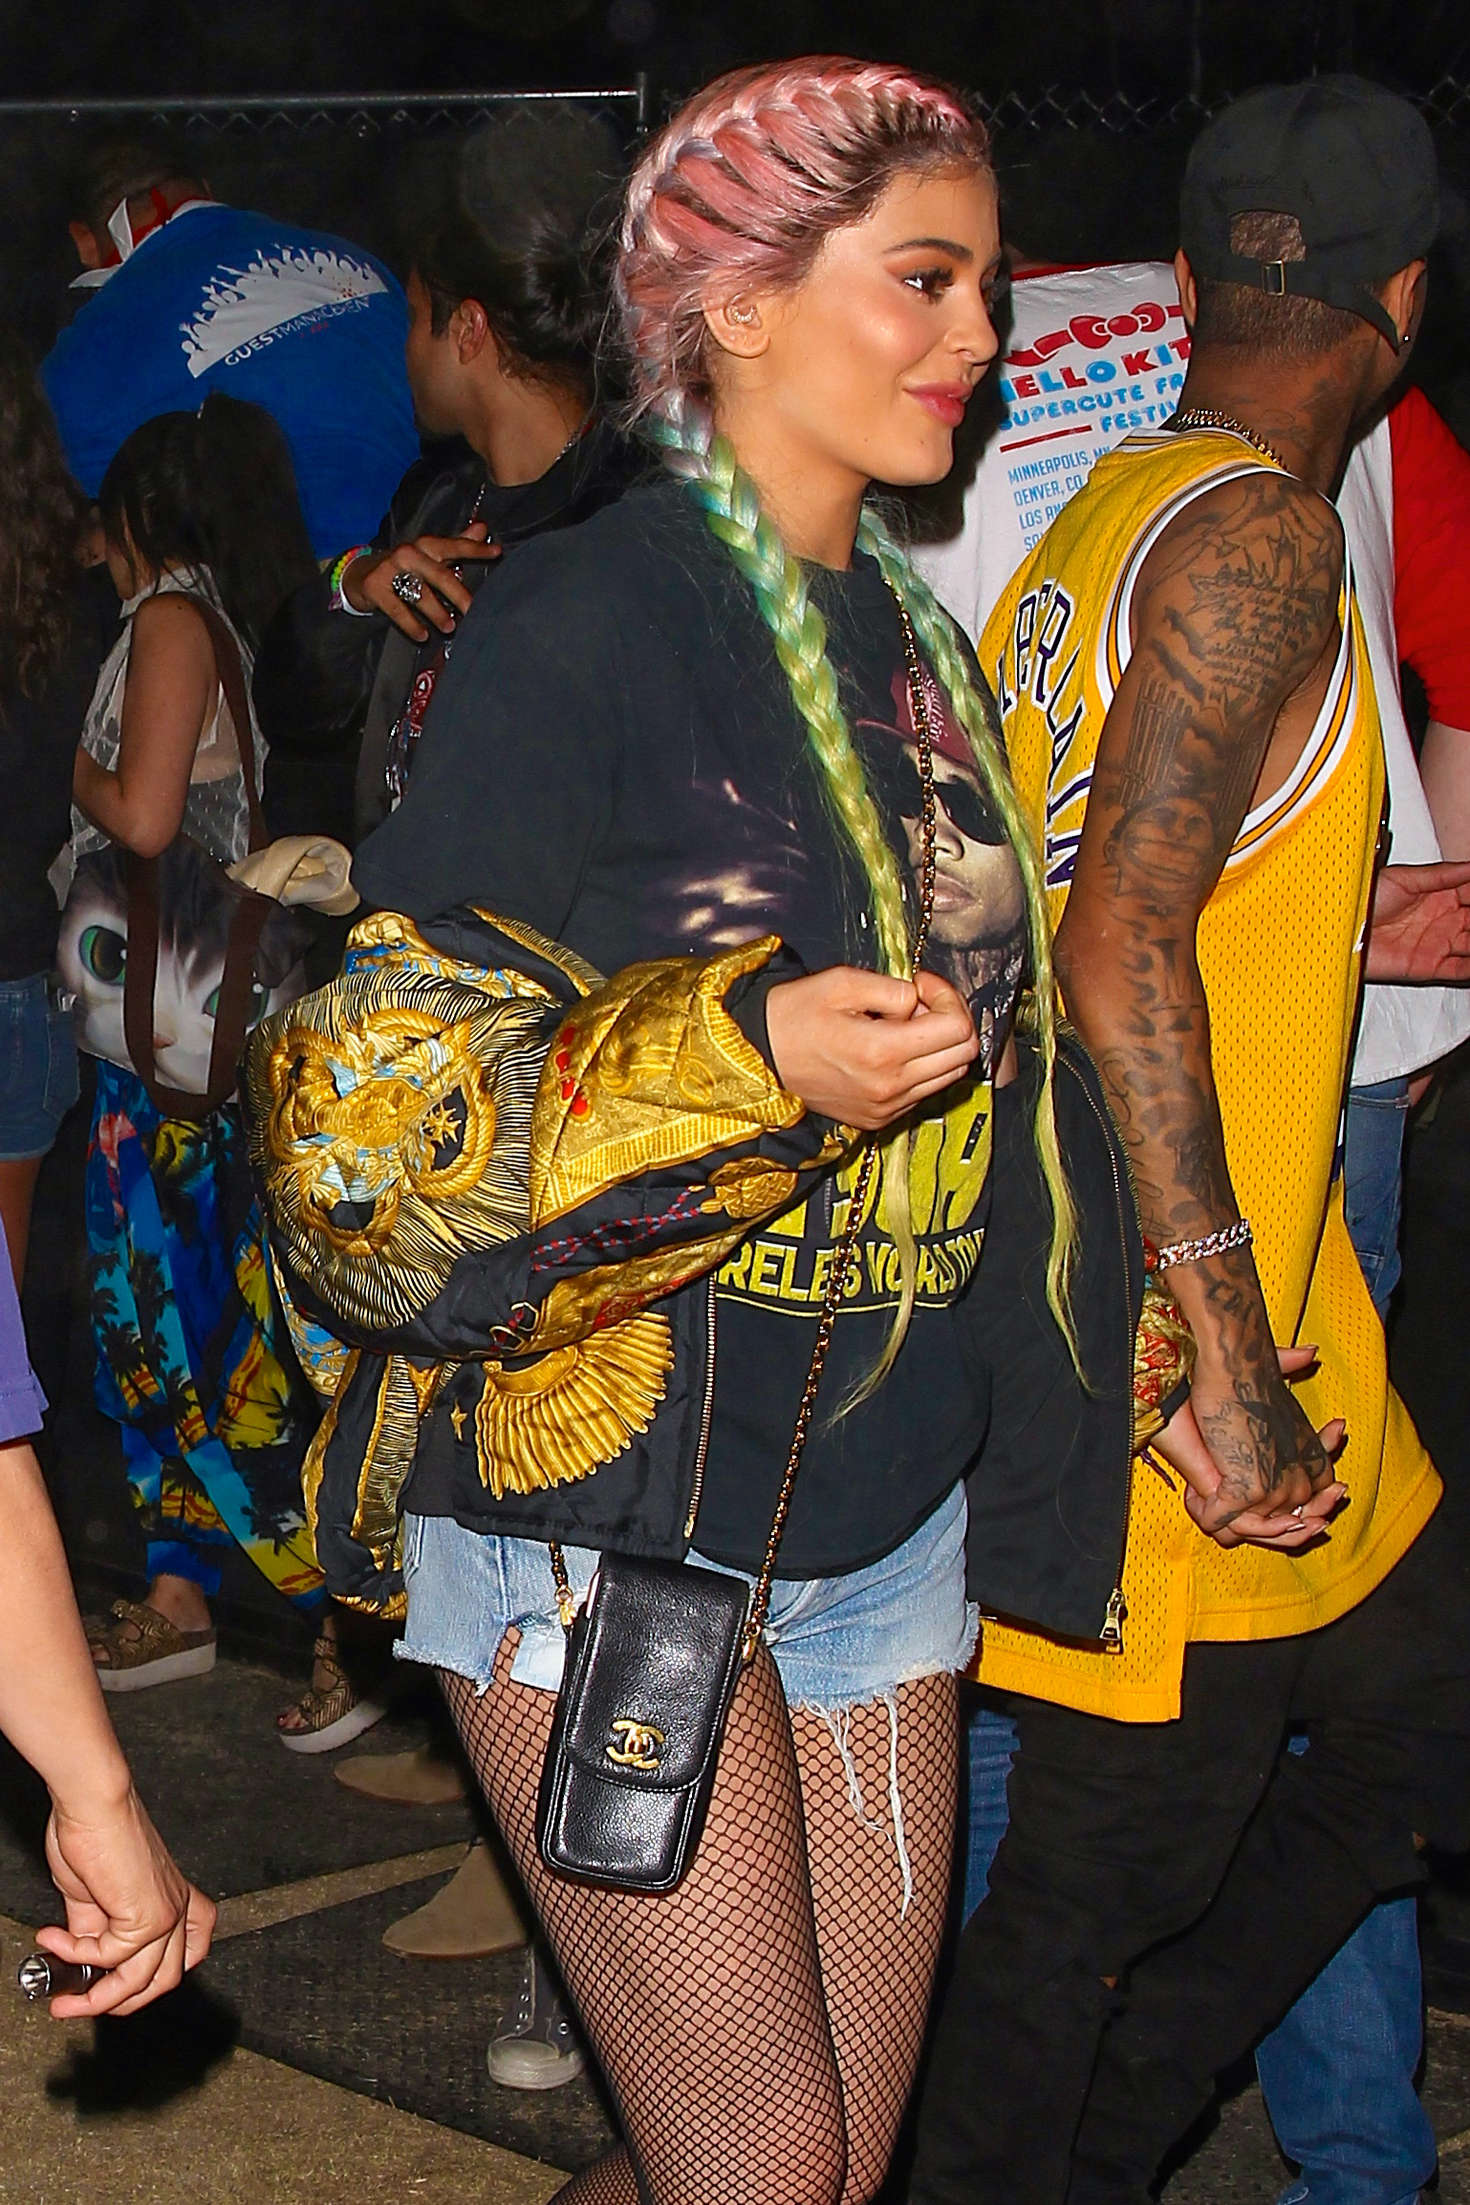 Kylie Jenner Coachella Valley Music And Arts Festival